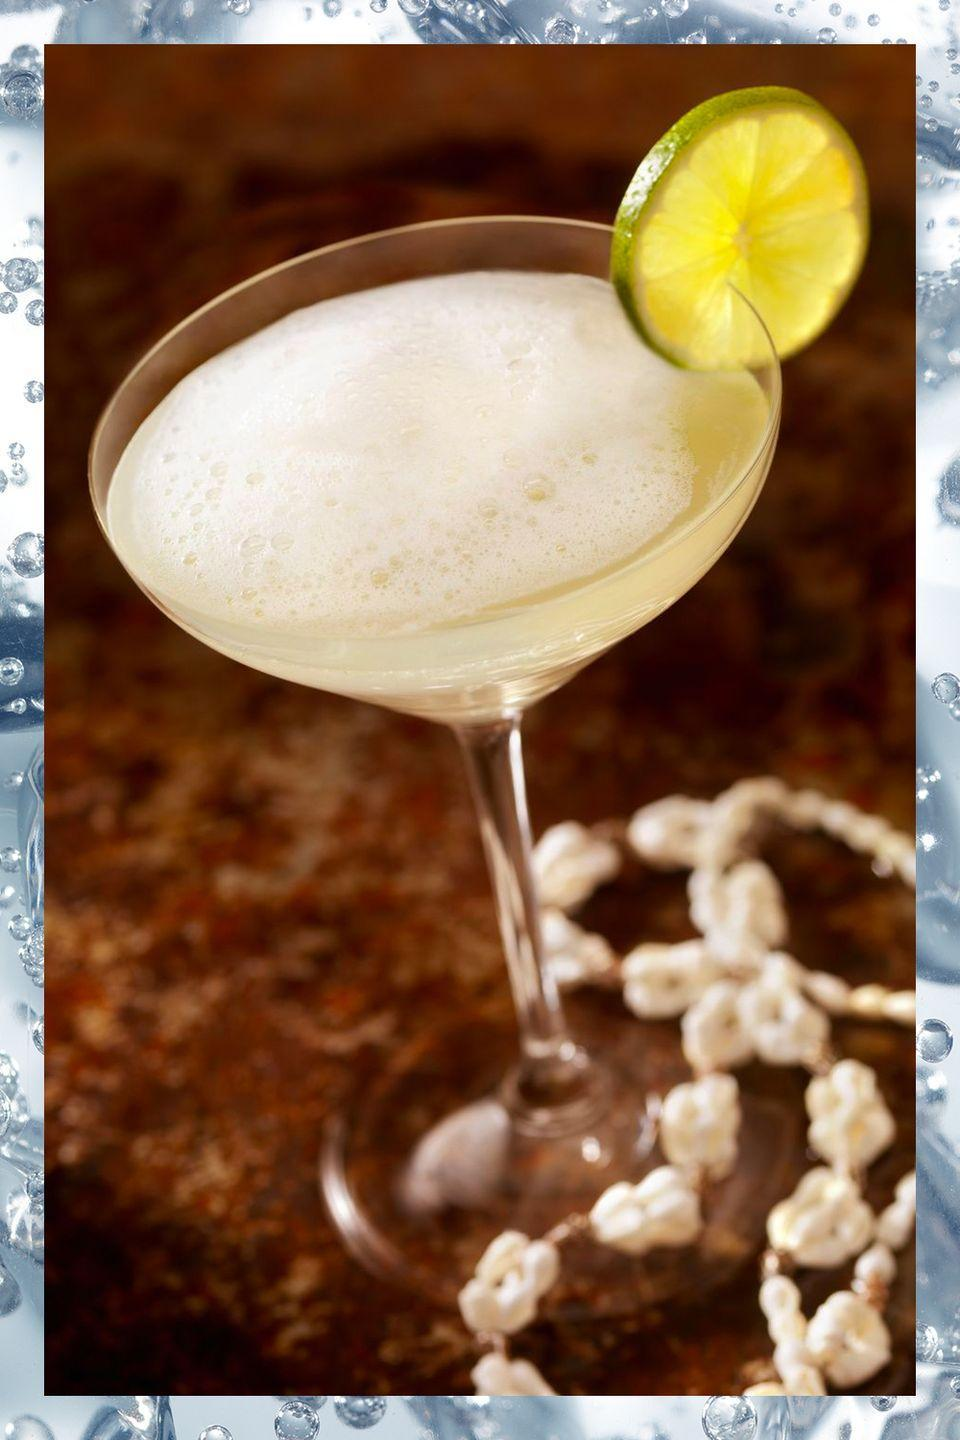 """<p>Forget the sweet frozen version made with a blender. A <a href=""""https://www.townandcountrymag.com/leisure/drinks/a3218/daiquiri-cocktail/"""" rel=""""nofollow noopener"""" target=""""_blank"""" data-ylk=""""slk:classic daiquiri"""" class=""""link rapid-noclick-resp"""">classic daiquiri</a> is one of the most well-balanced cocktails around.</p><p>- 2 oz light rum<br>- 1 oz simple syrup<br>- 1 oz lime juice</p><p><em>Shake ingredients with ice and strain into cocktail glass. Garnish with lime wheel.</em></p><p><strong>More</strong>: <a href=""""https://www.townandcountrymag.com/leisure/drinks/g9539373/sweet-and-fruity-cocktail-recipes/"""" rel=""""nofollow noopener"""" target=""""_blank"""" data-ylk=""""slk:The Best Sweet and Fruity Cocktails Ever"""" class=""""link rapid-noclick-resp"""">The Best Sweet and Fruity Cocktails Ever</a></p>"""